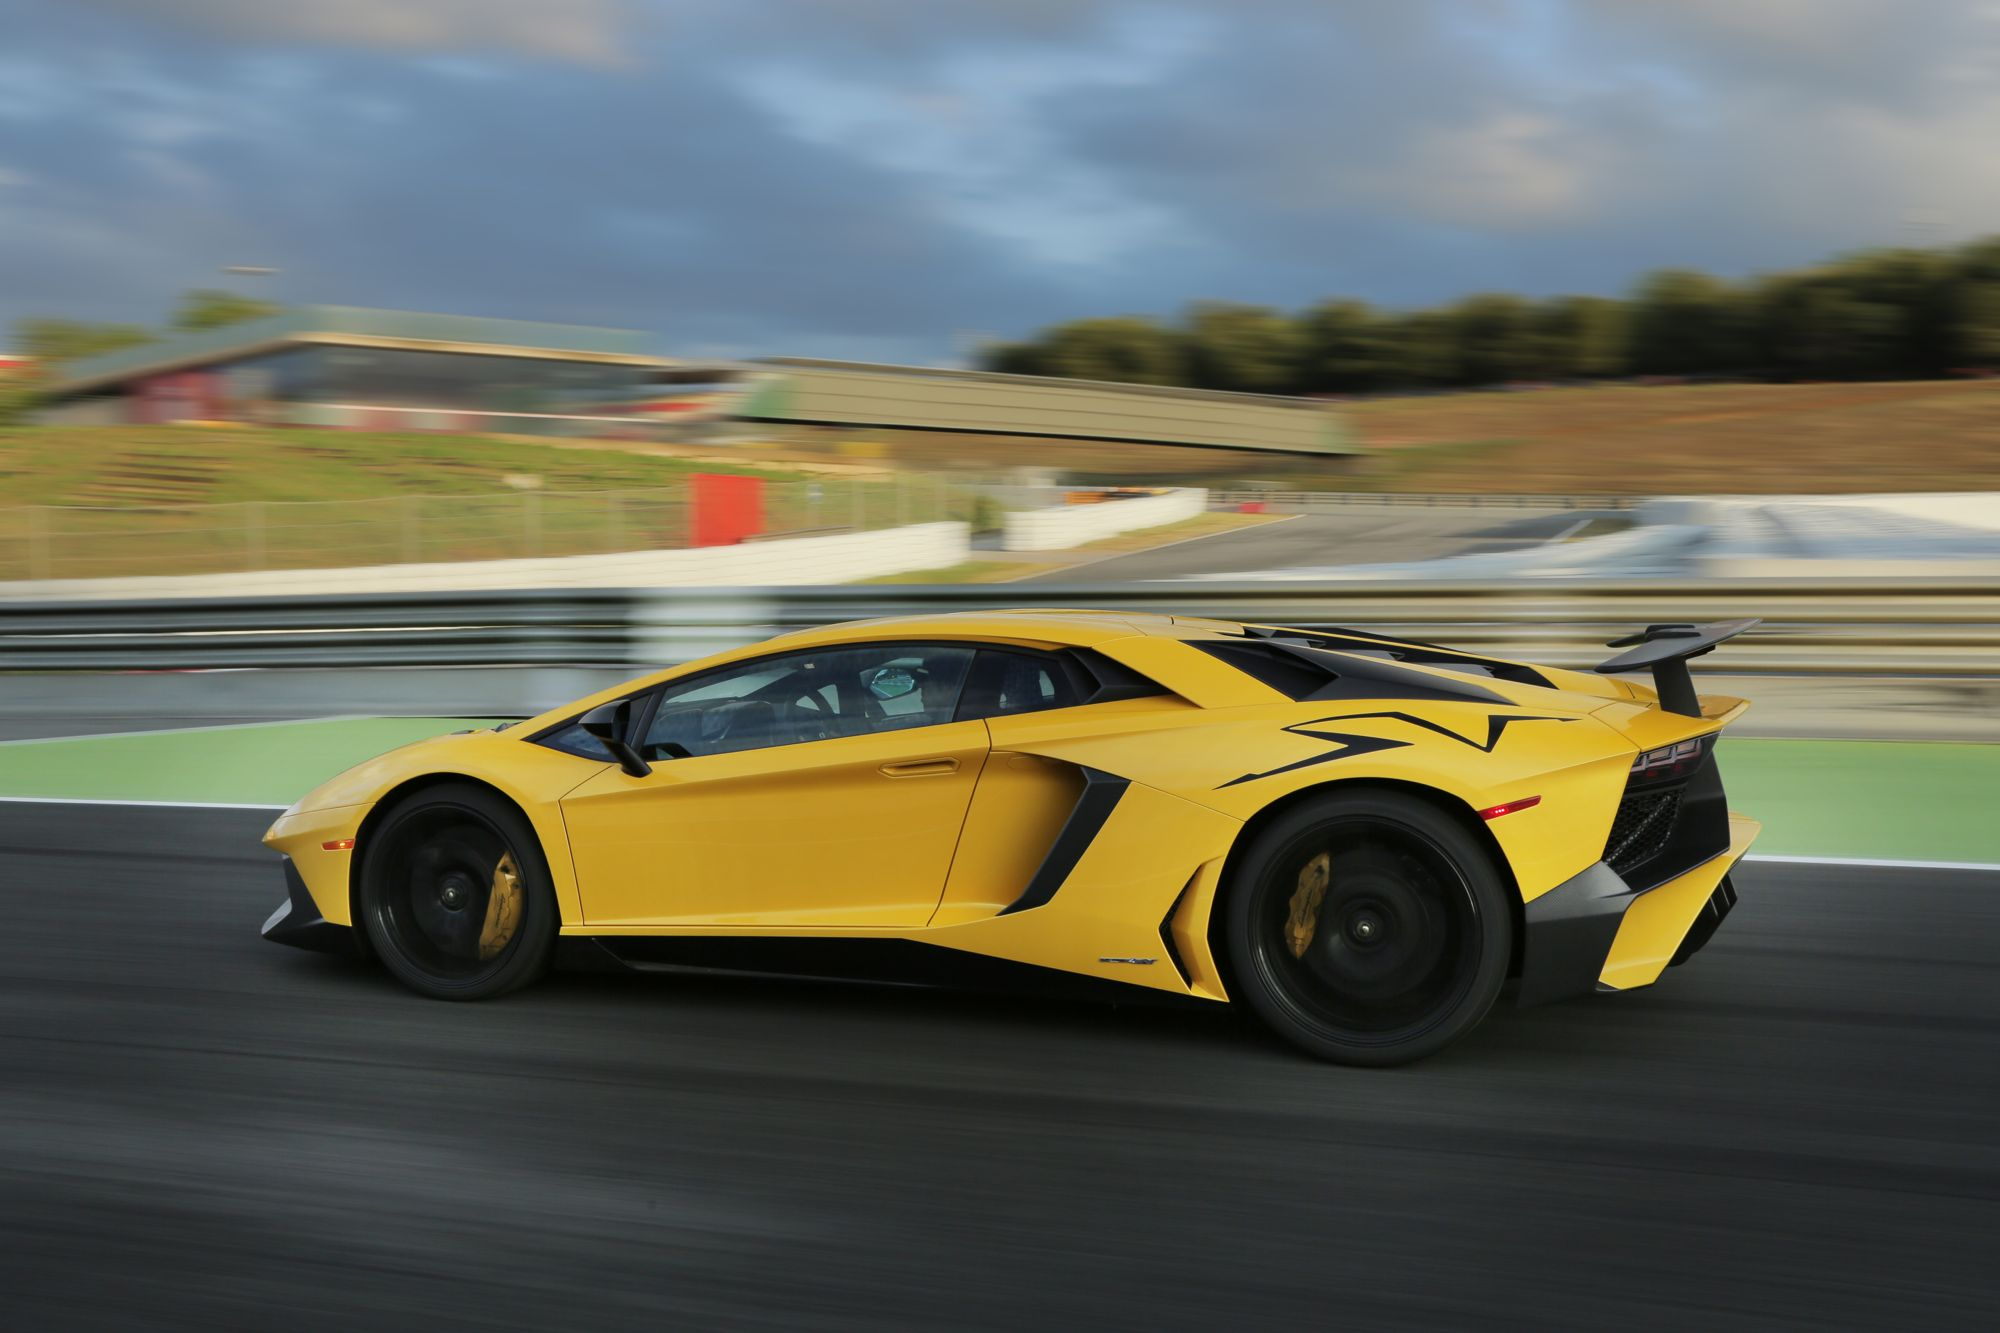 Lamborghini Sports Car >> 2016 Lamborghini Aventador SV Review - photos | CarAdvice